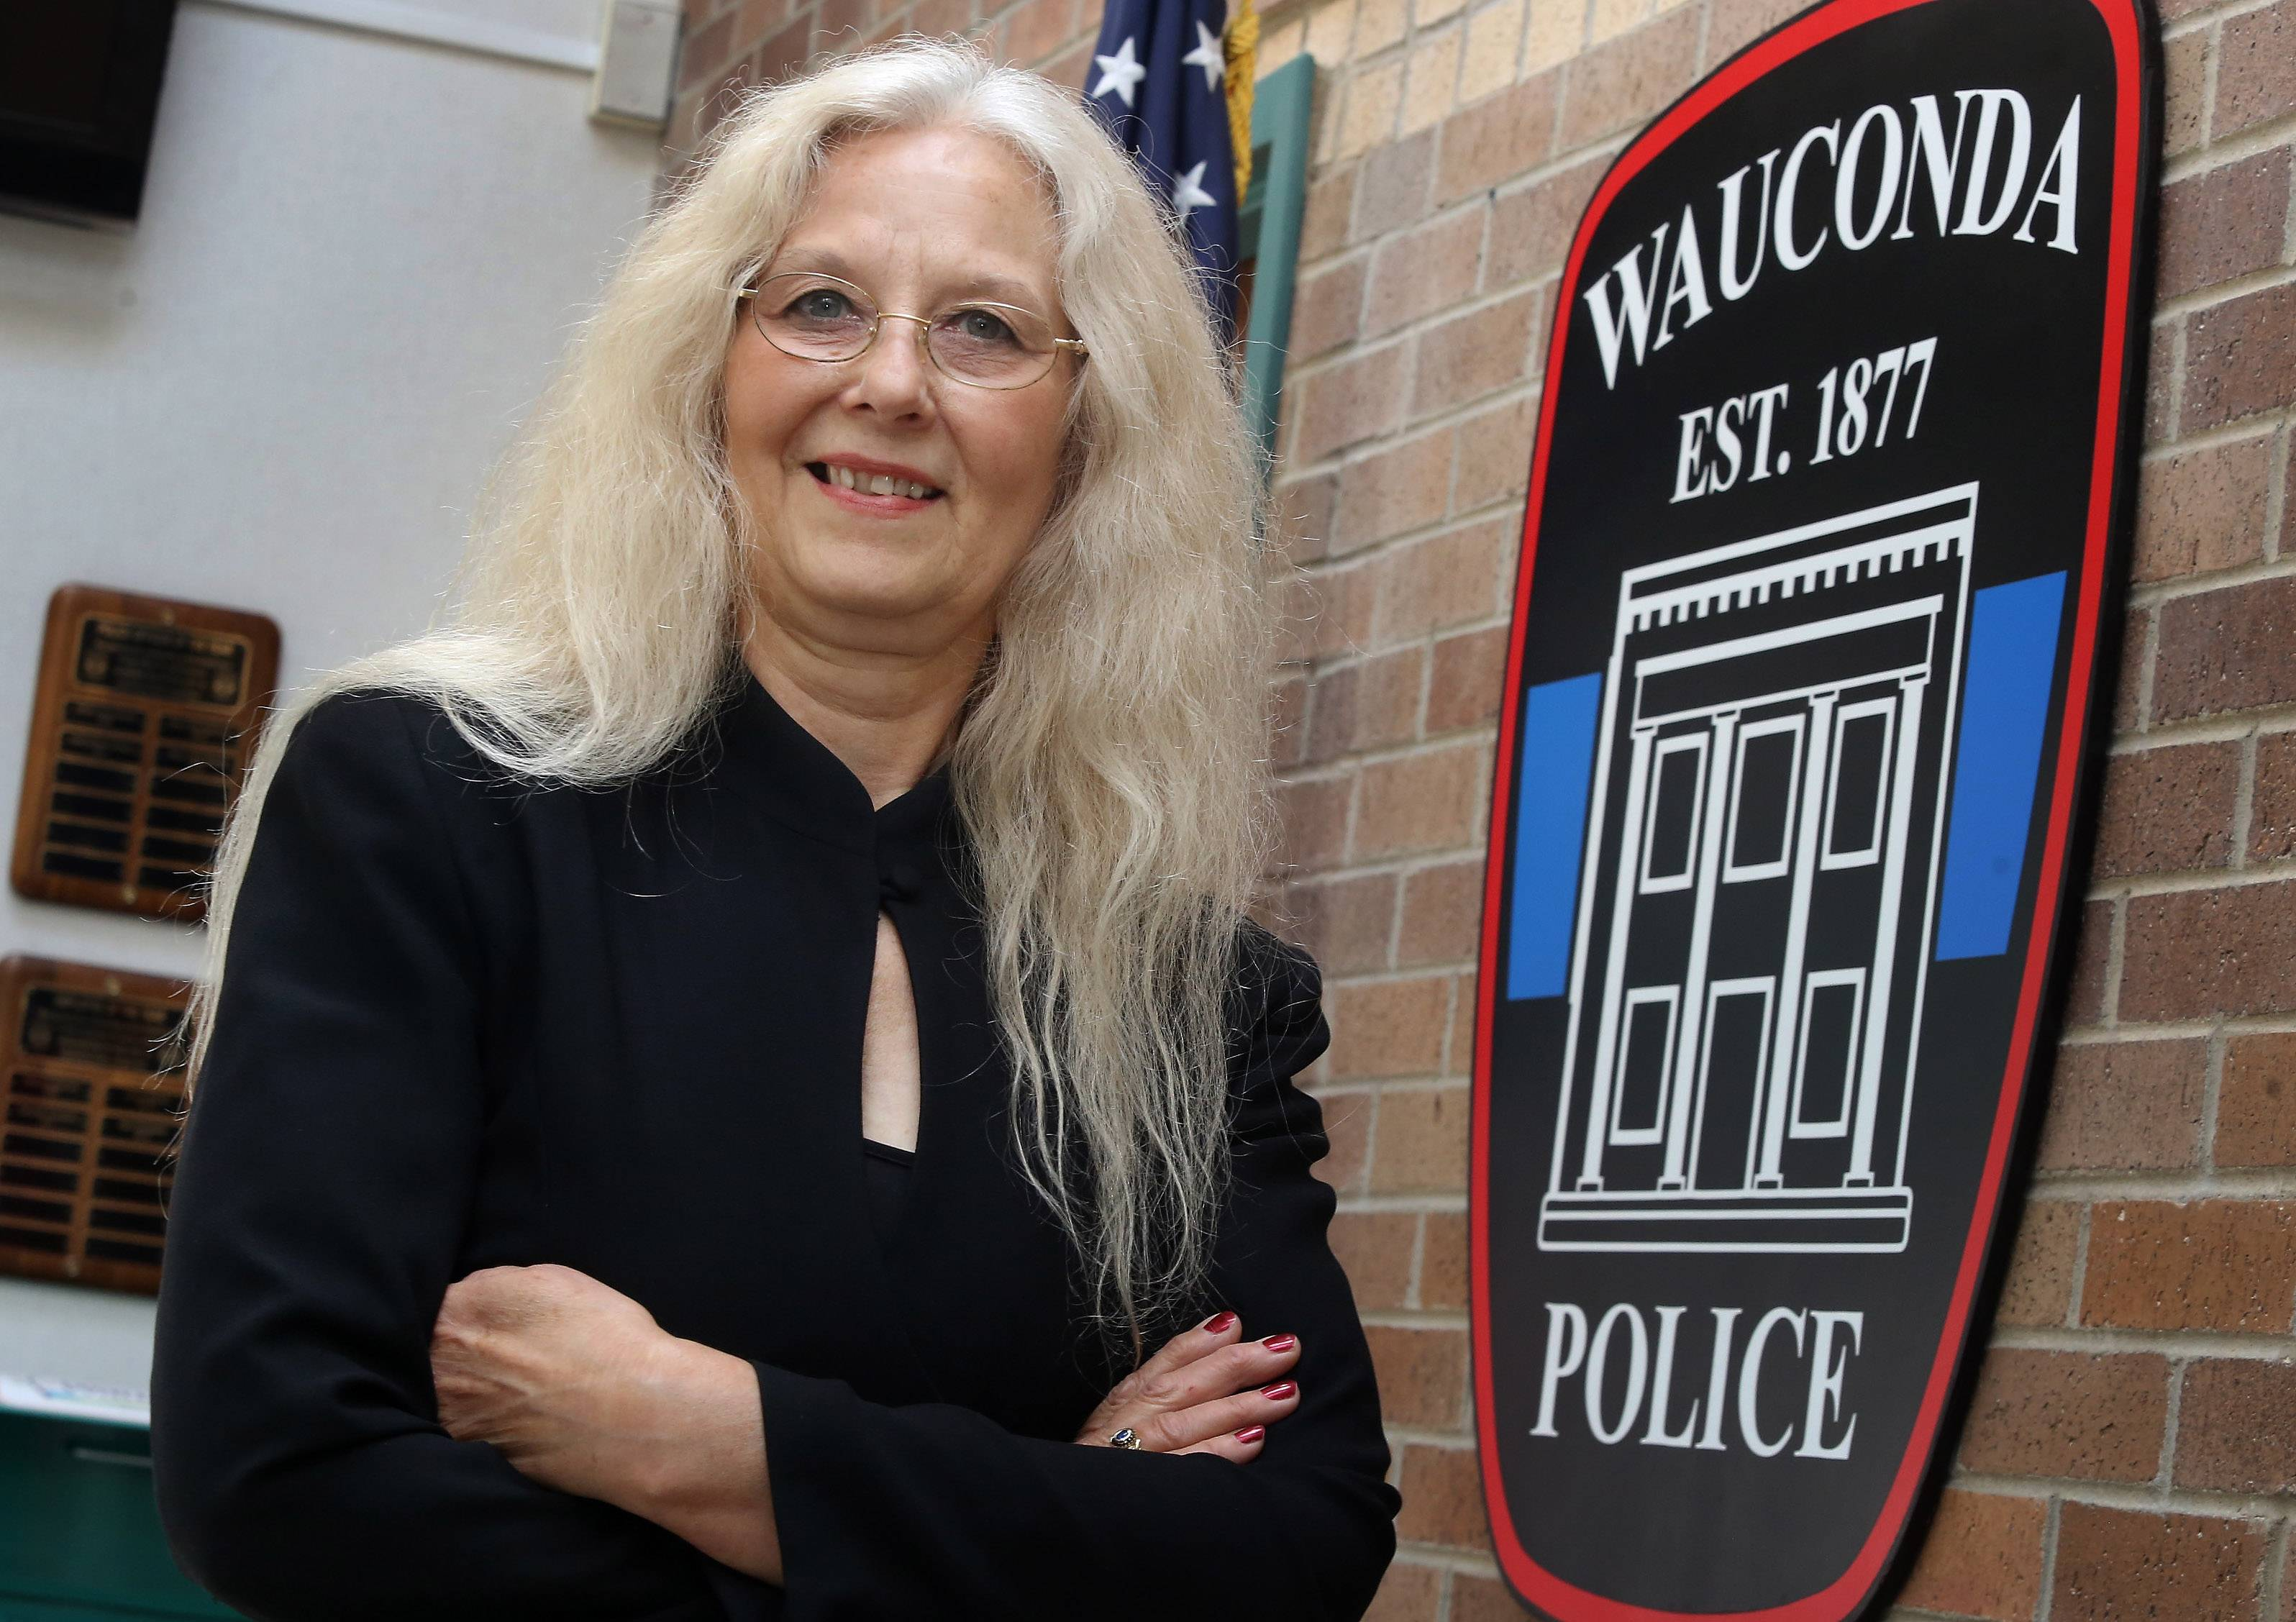 Wauconda police department employee celebrates 40 years on the job